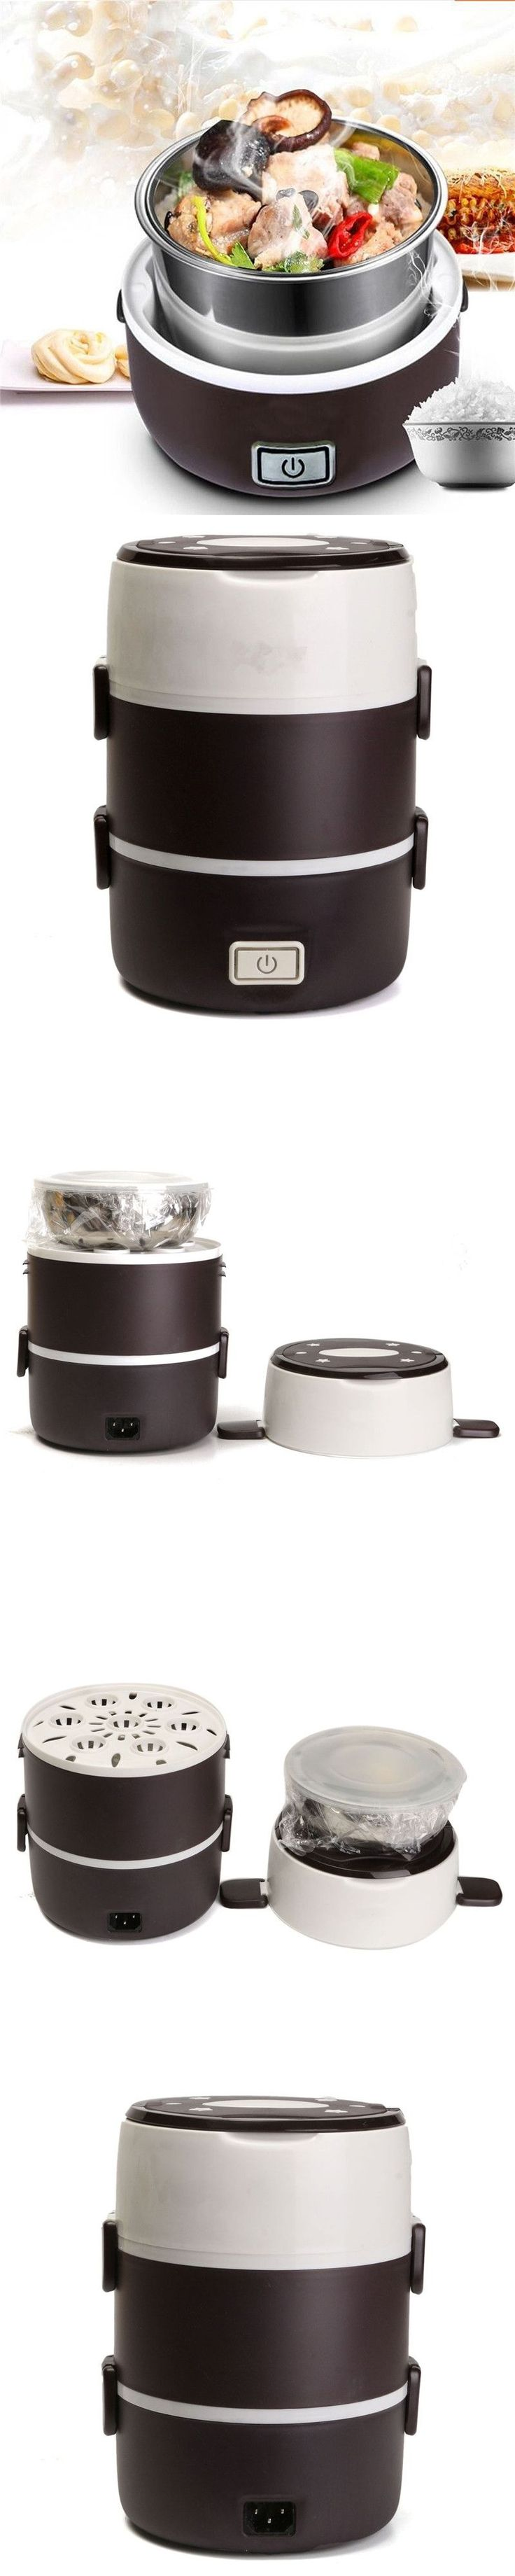 New Arrival Electric 2L Portable Lunch Box Mini Rice Cooker Steamer 3 Layer Stainless Steel #NewHomeAppliances